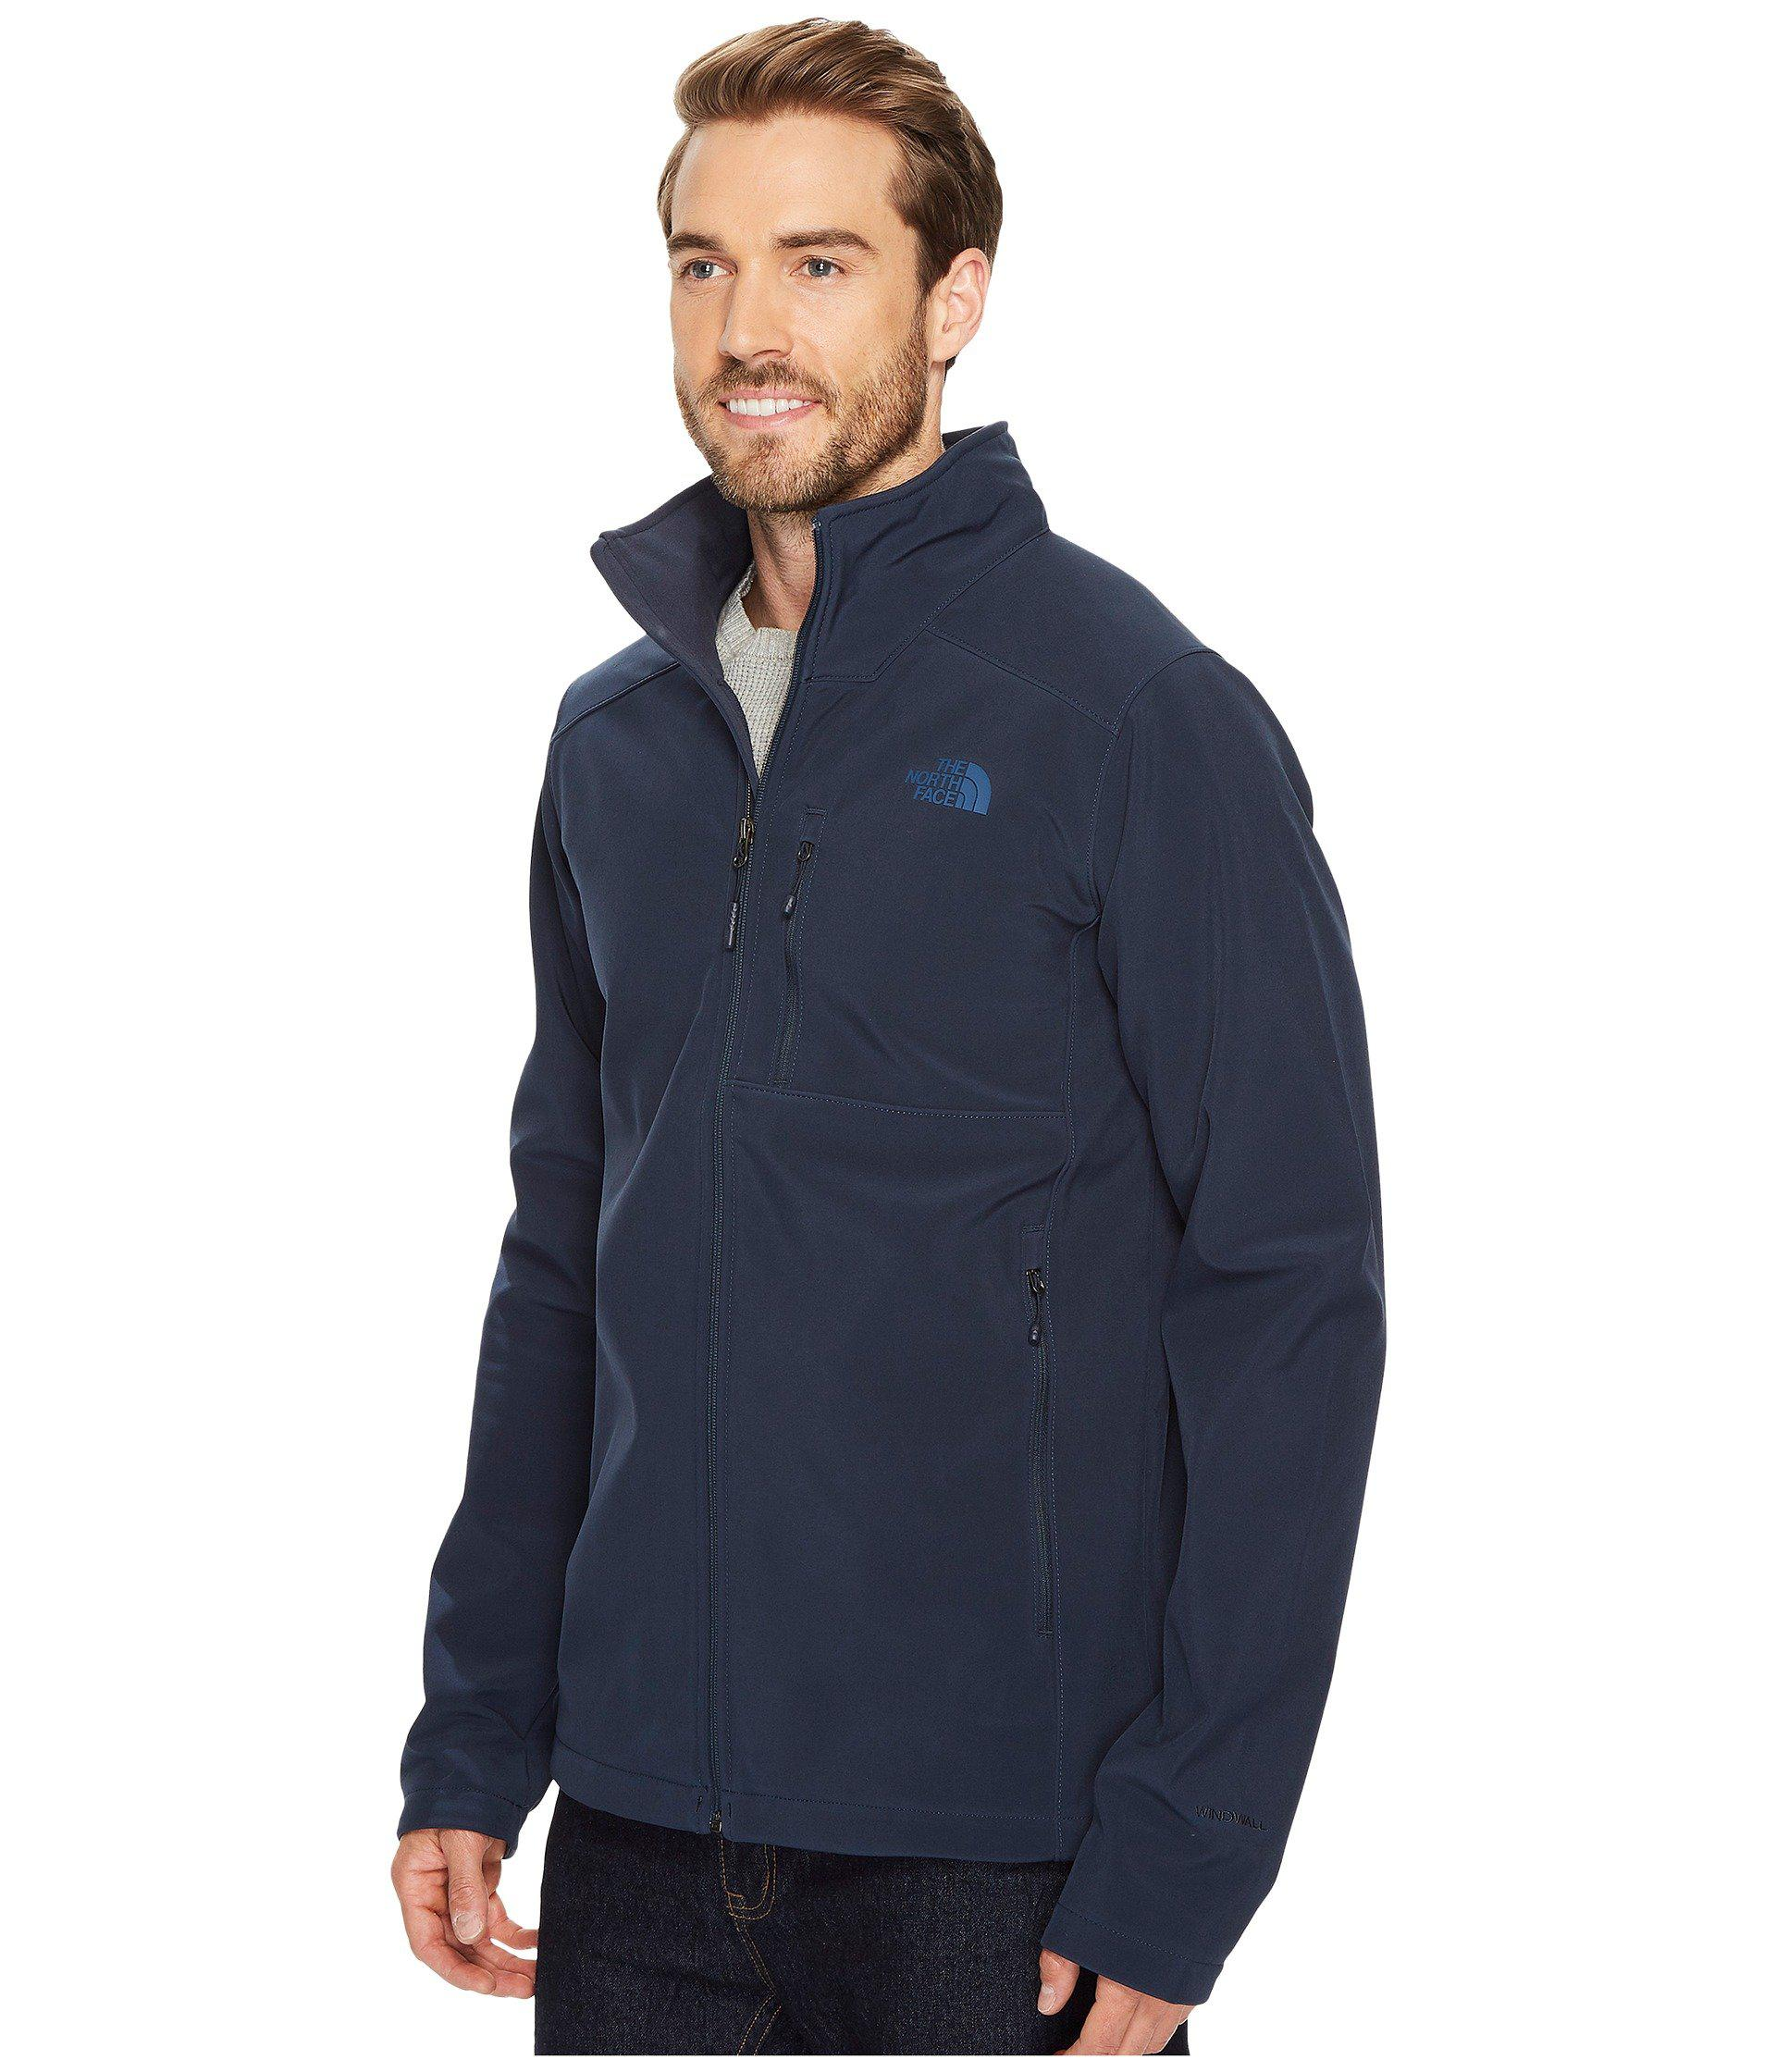 e2971a9249 Lyst - The North Face Apex Bionic 2 Jacket - Tall (tnf Medium Grey Heather  tnf Medium Grey Heather) Men s Coat in Blue for Men